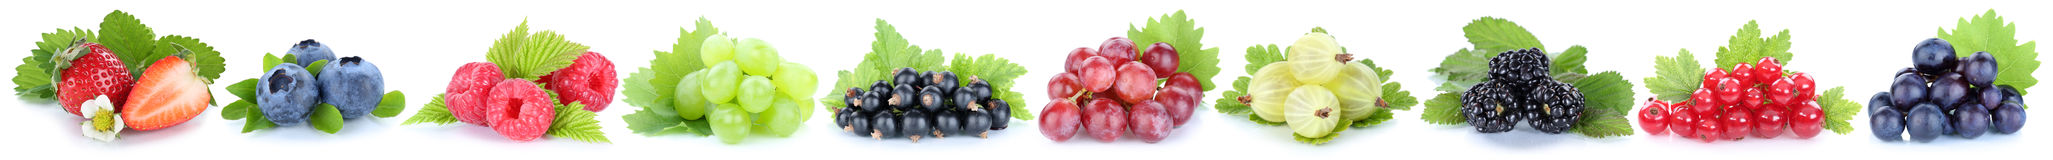 Collection of berries fruits grapes strawberries red currant ber Stock Image